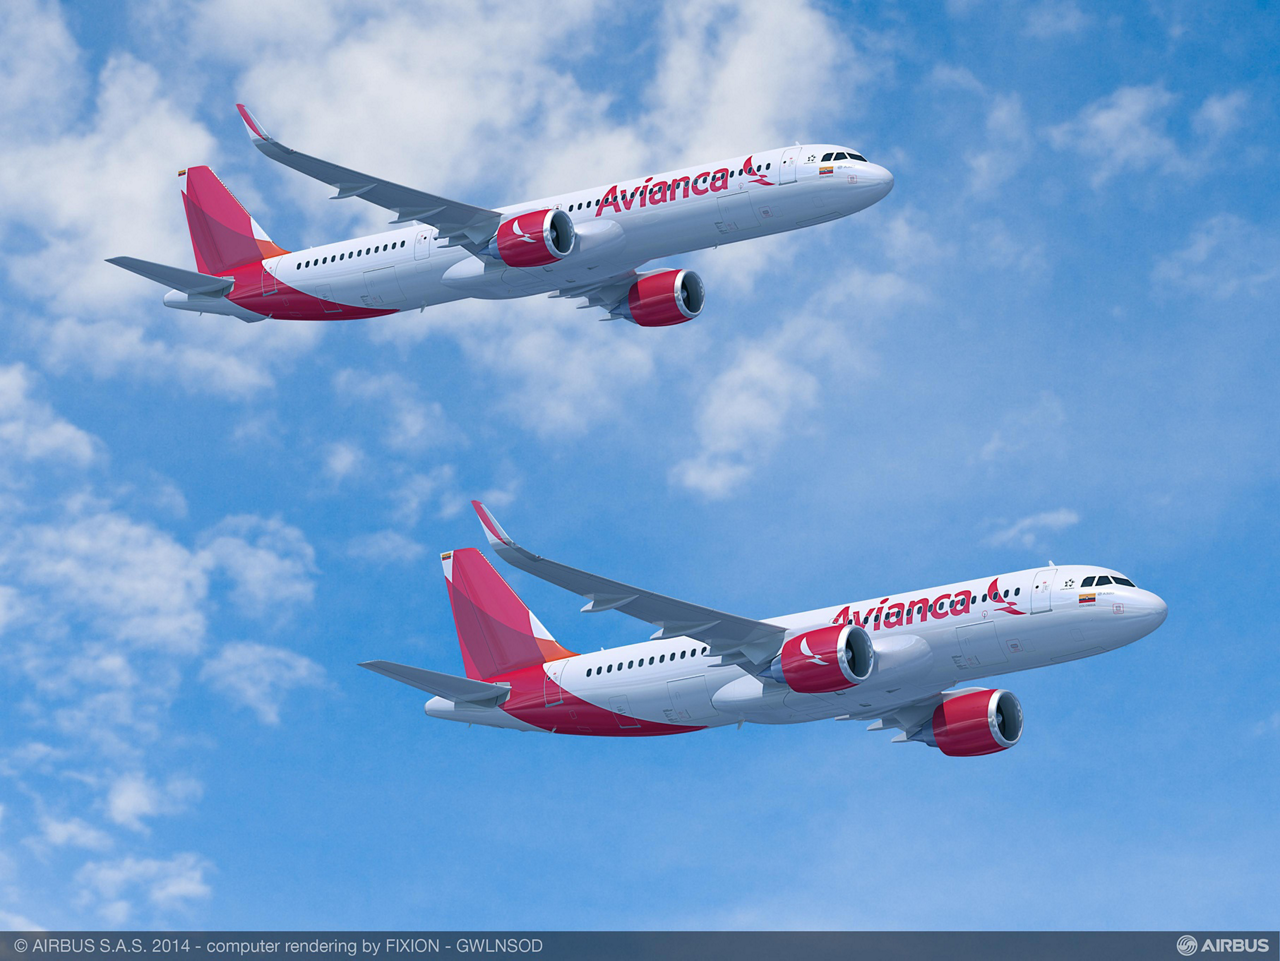 Avianca has signed a purchase agreement with Airbus for 100 A320neo (new engine option) Family aircraft, which is the largest single order ever made in Latin America's aviation history